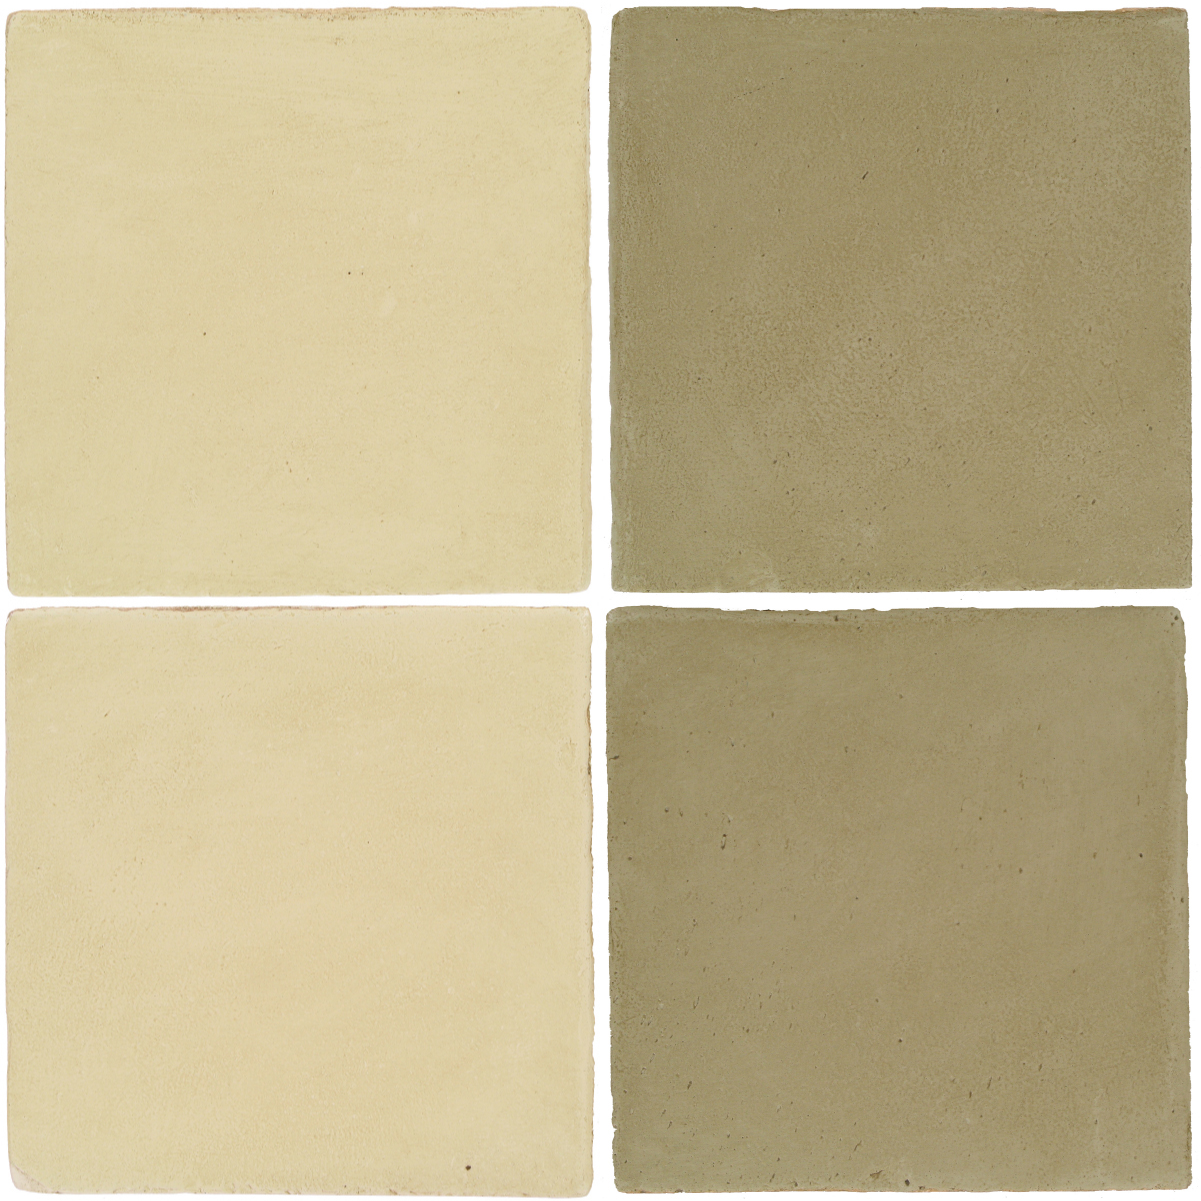 Pedralbes Antique Terracotta  2 Color Combinations  OHS-PGPW Pergamino White + OHS-PGDW Dirty W.